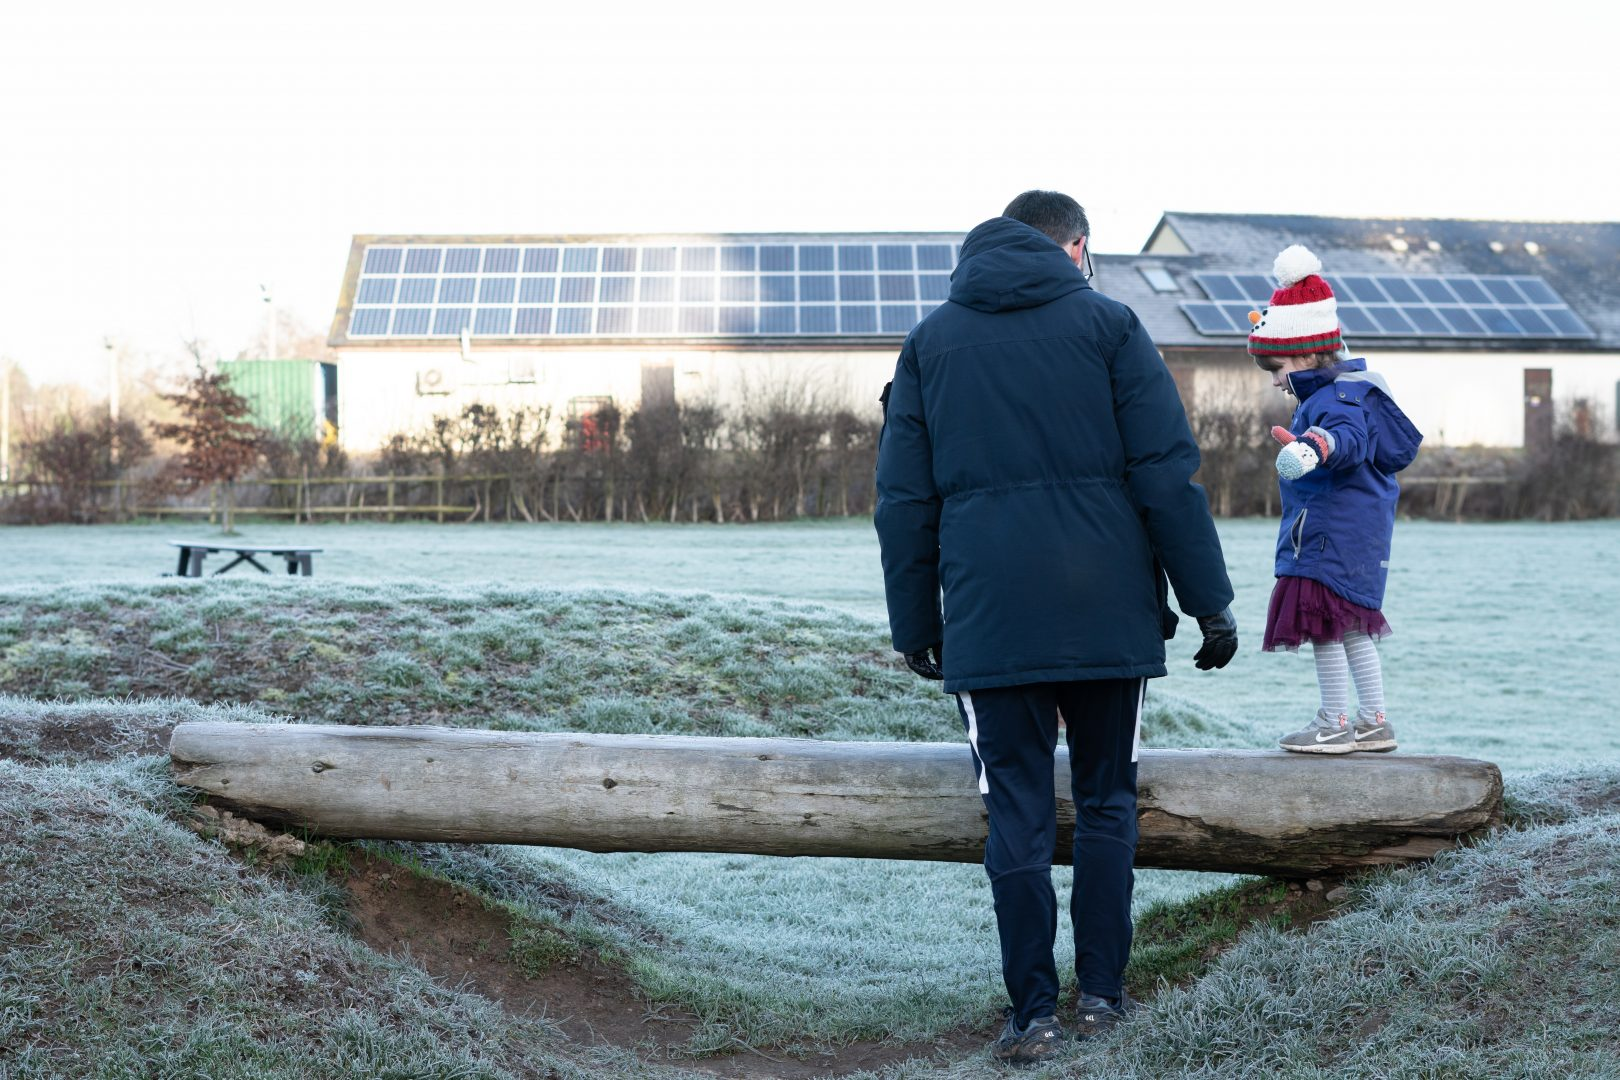 a photo of a dad and daughter play on a balance beam with thick winter frost